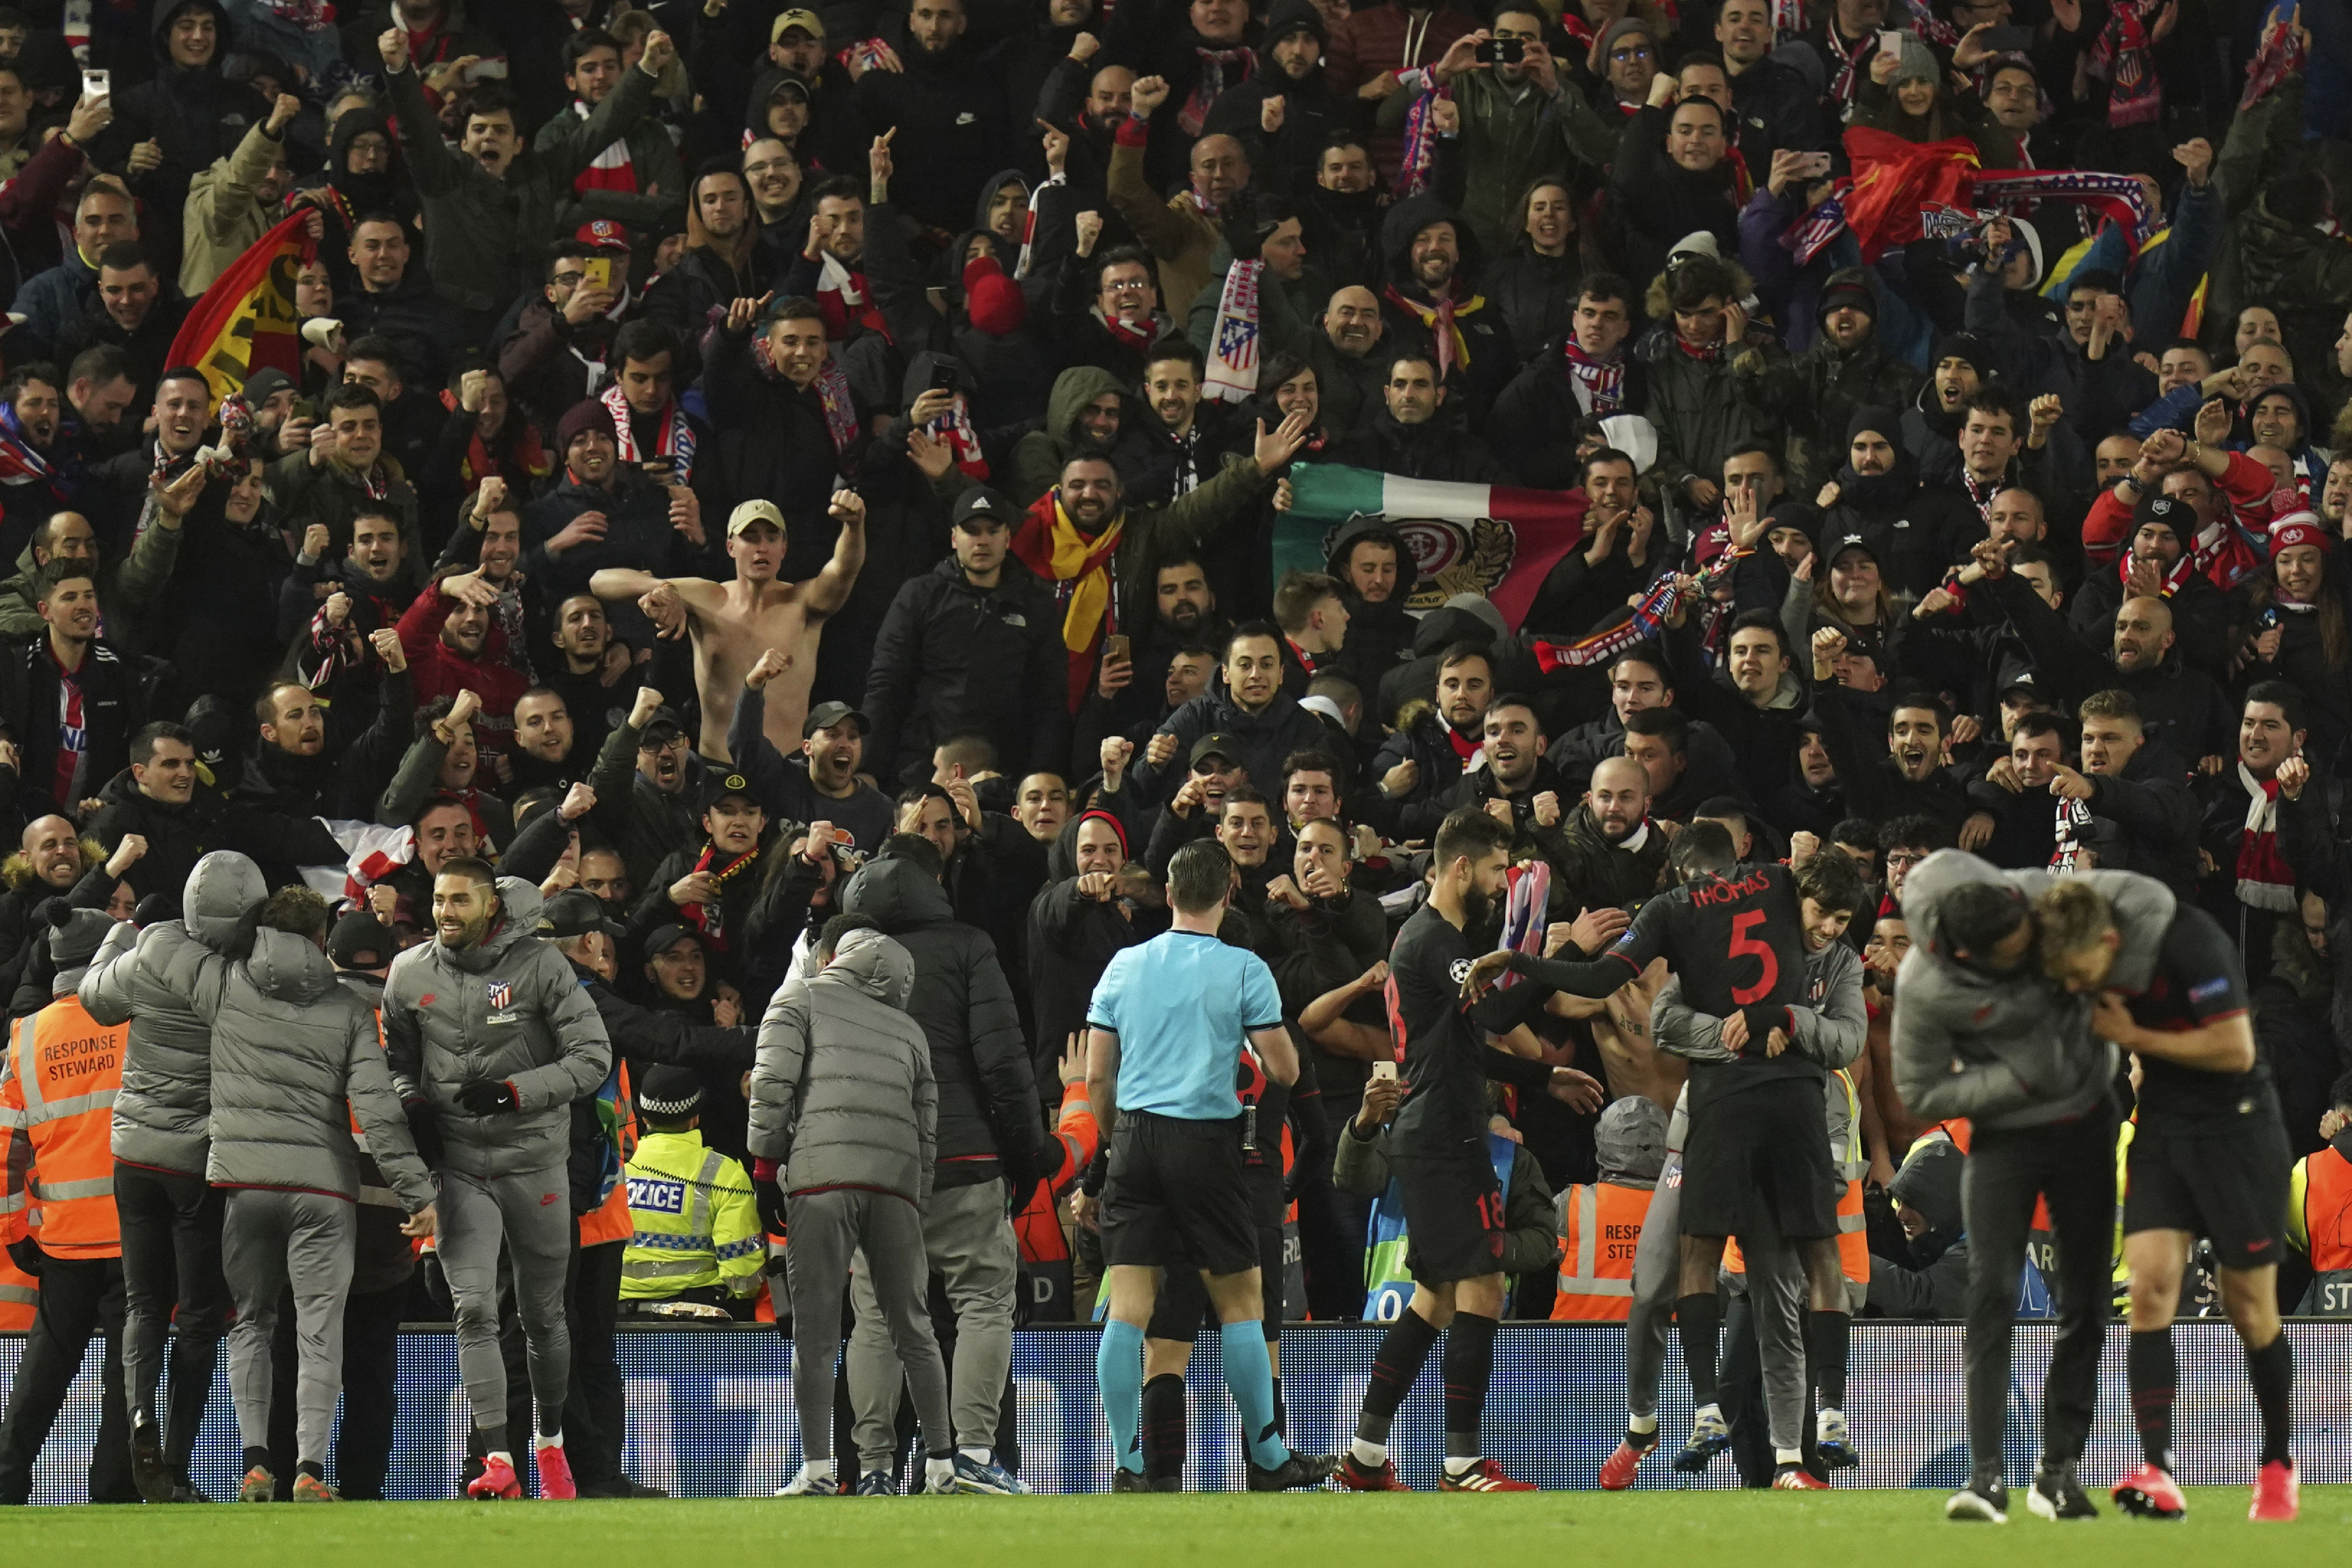 Atletico Madrid players celebrate at the end of the second leg, round of 16, Champions League soccer match between Liverpool and Atletico Madrid at Anfield stadium in Liverpool, England, Wednesday, March 11, 2020. (AP Photo/Jon Super)